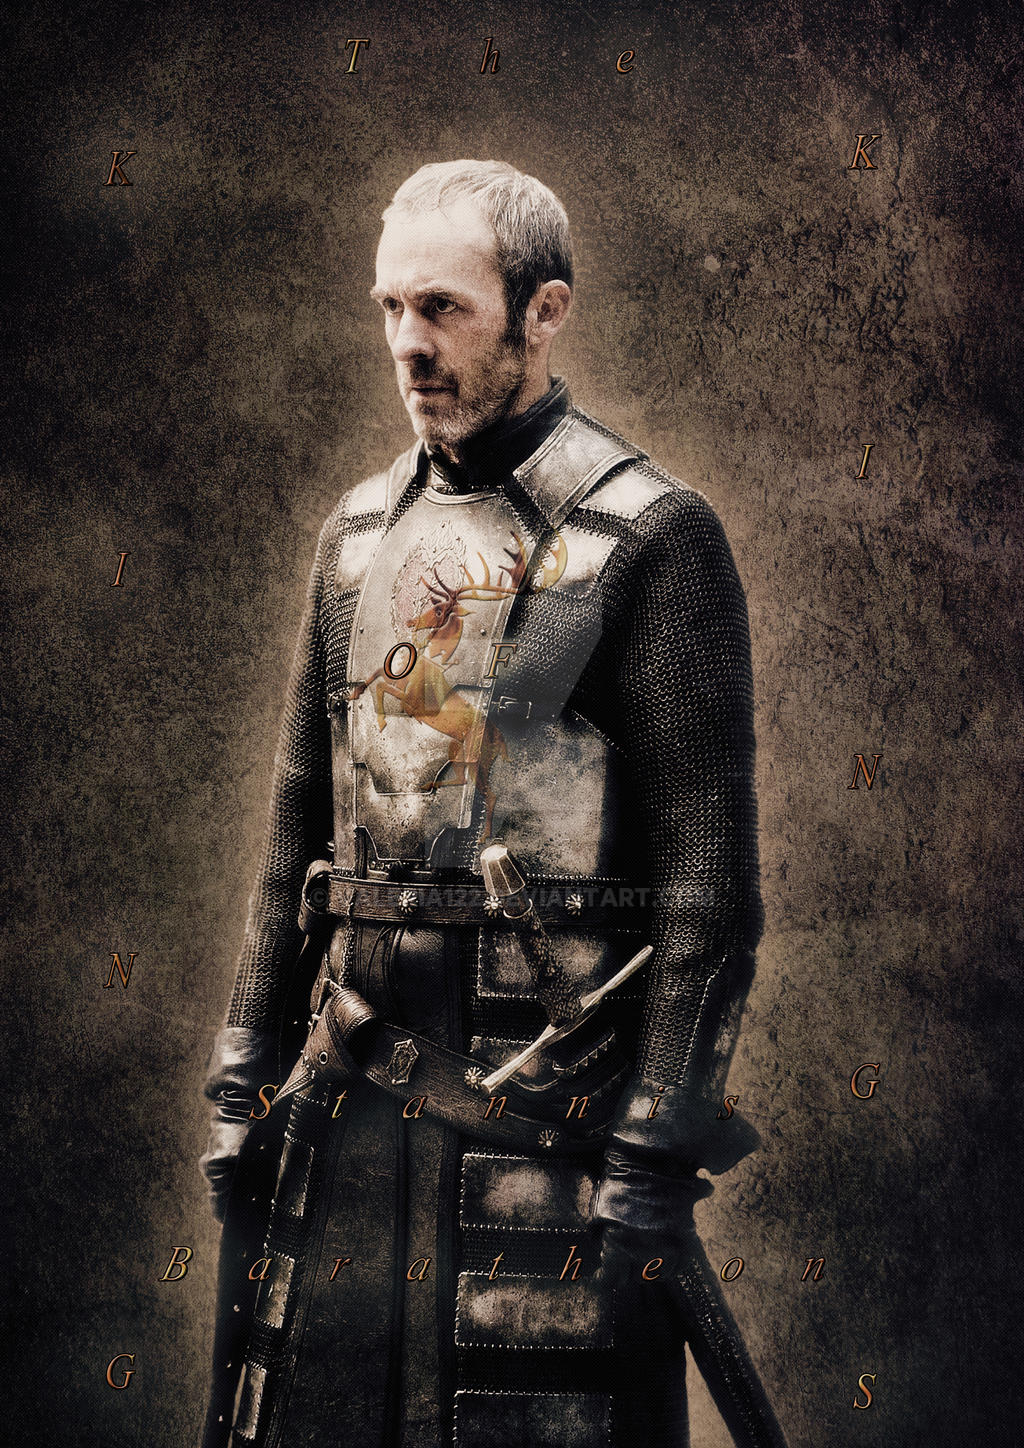 Realismo........... Stannis_baratheon___the_one_true_king_by_valeria122-d7neh80